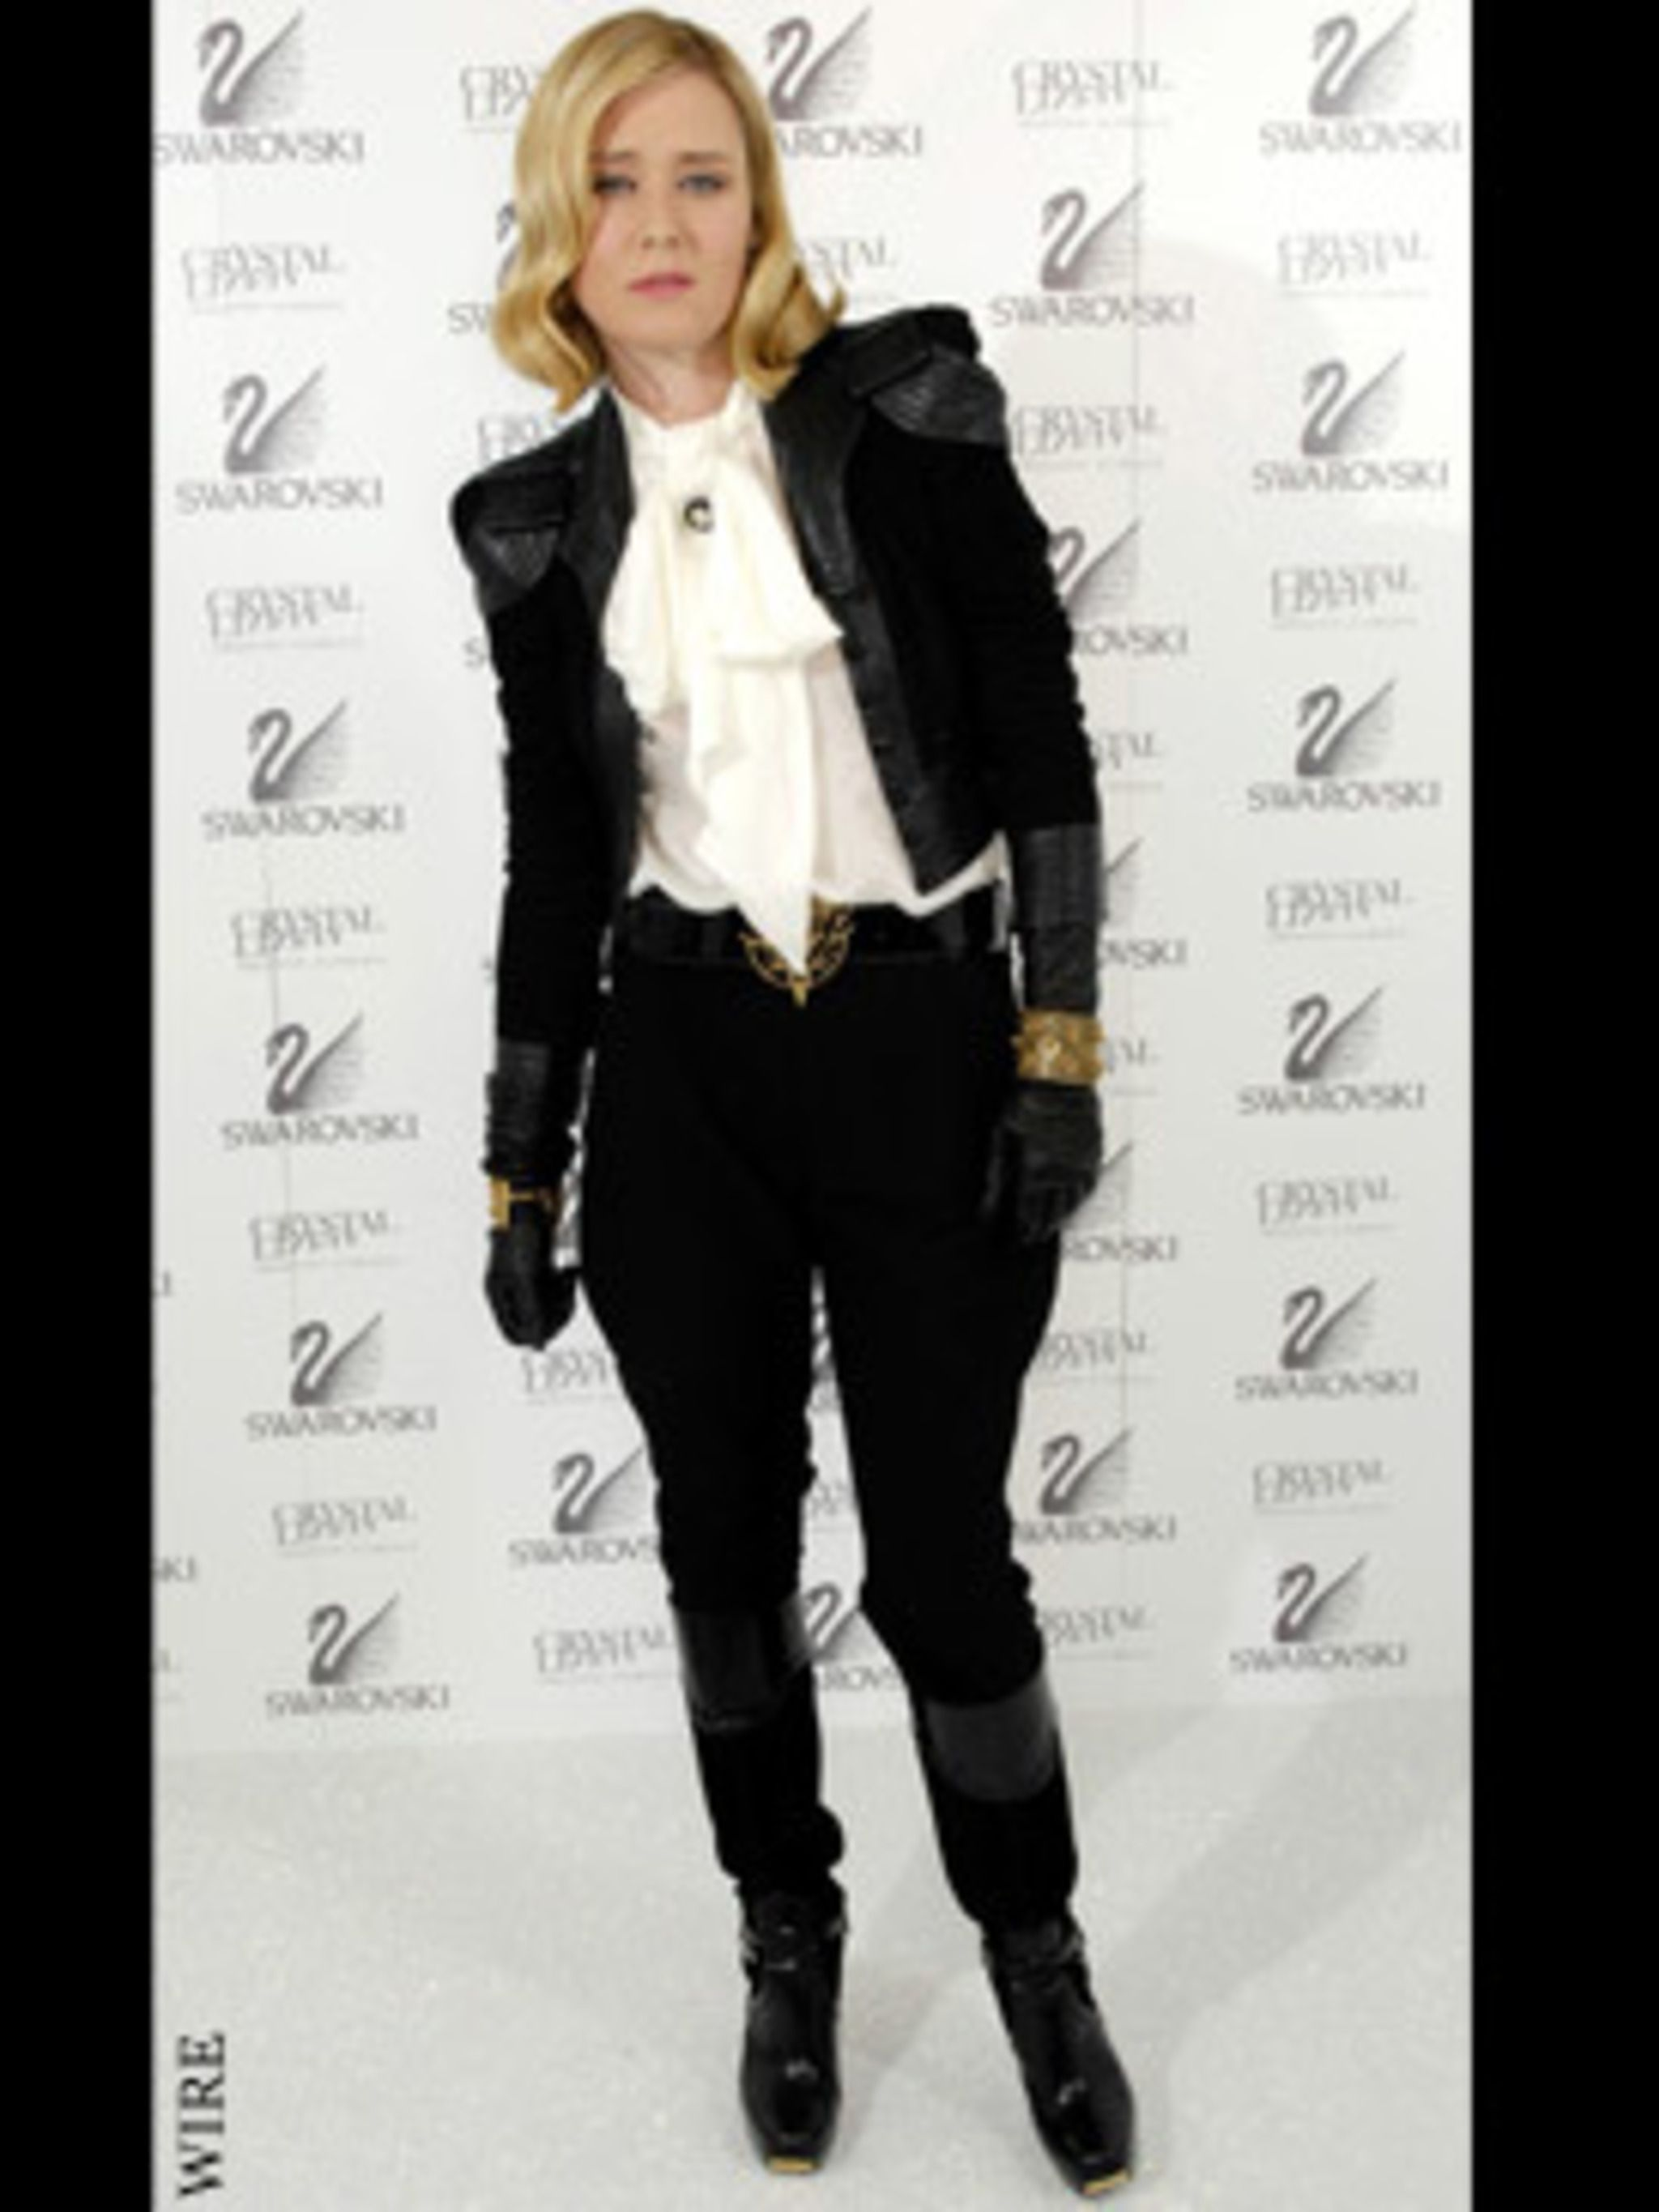 <p>Roison is a huge fan of 1980's style shoulder pads - she sported this heavily padded jacket to last years Q awards.</p>